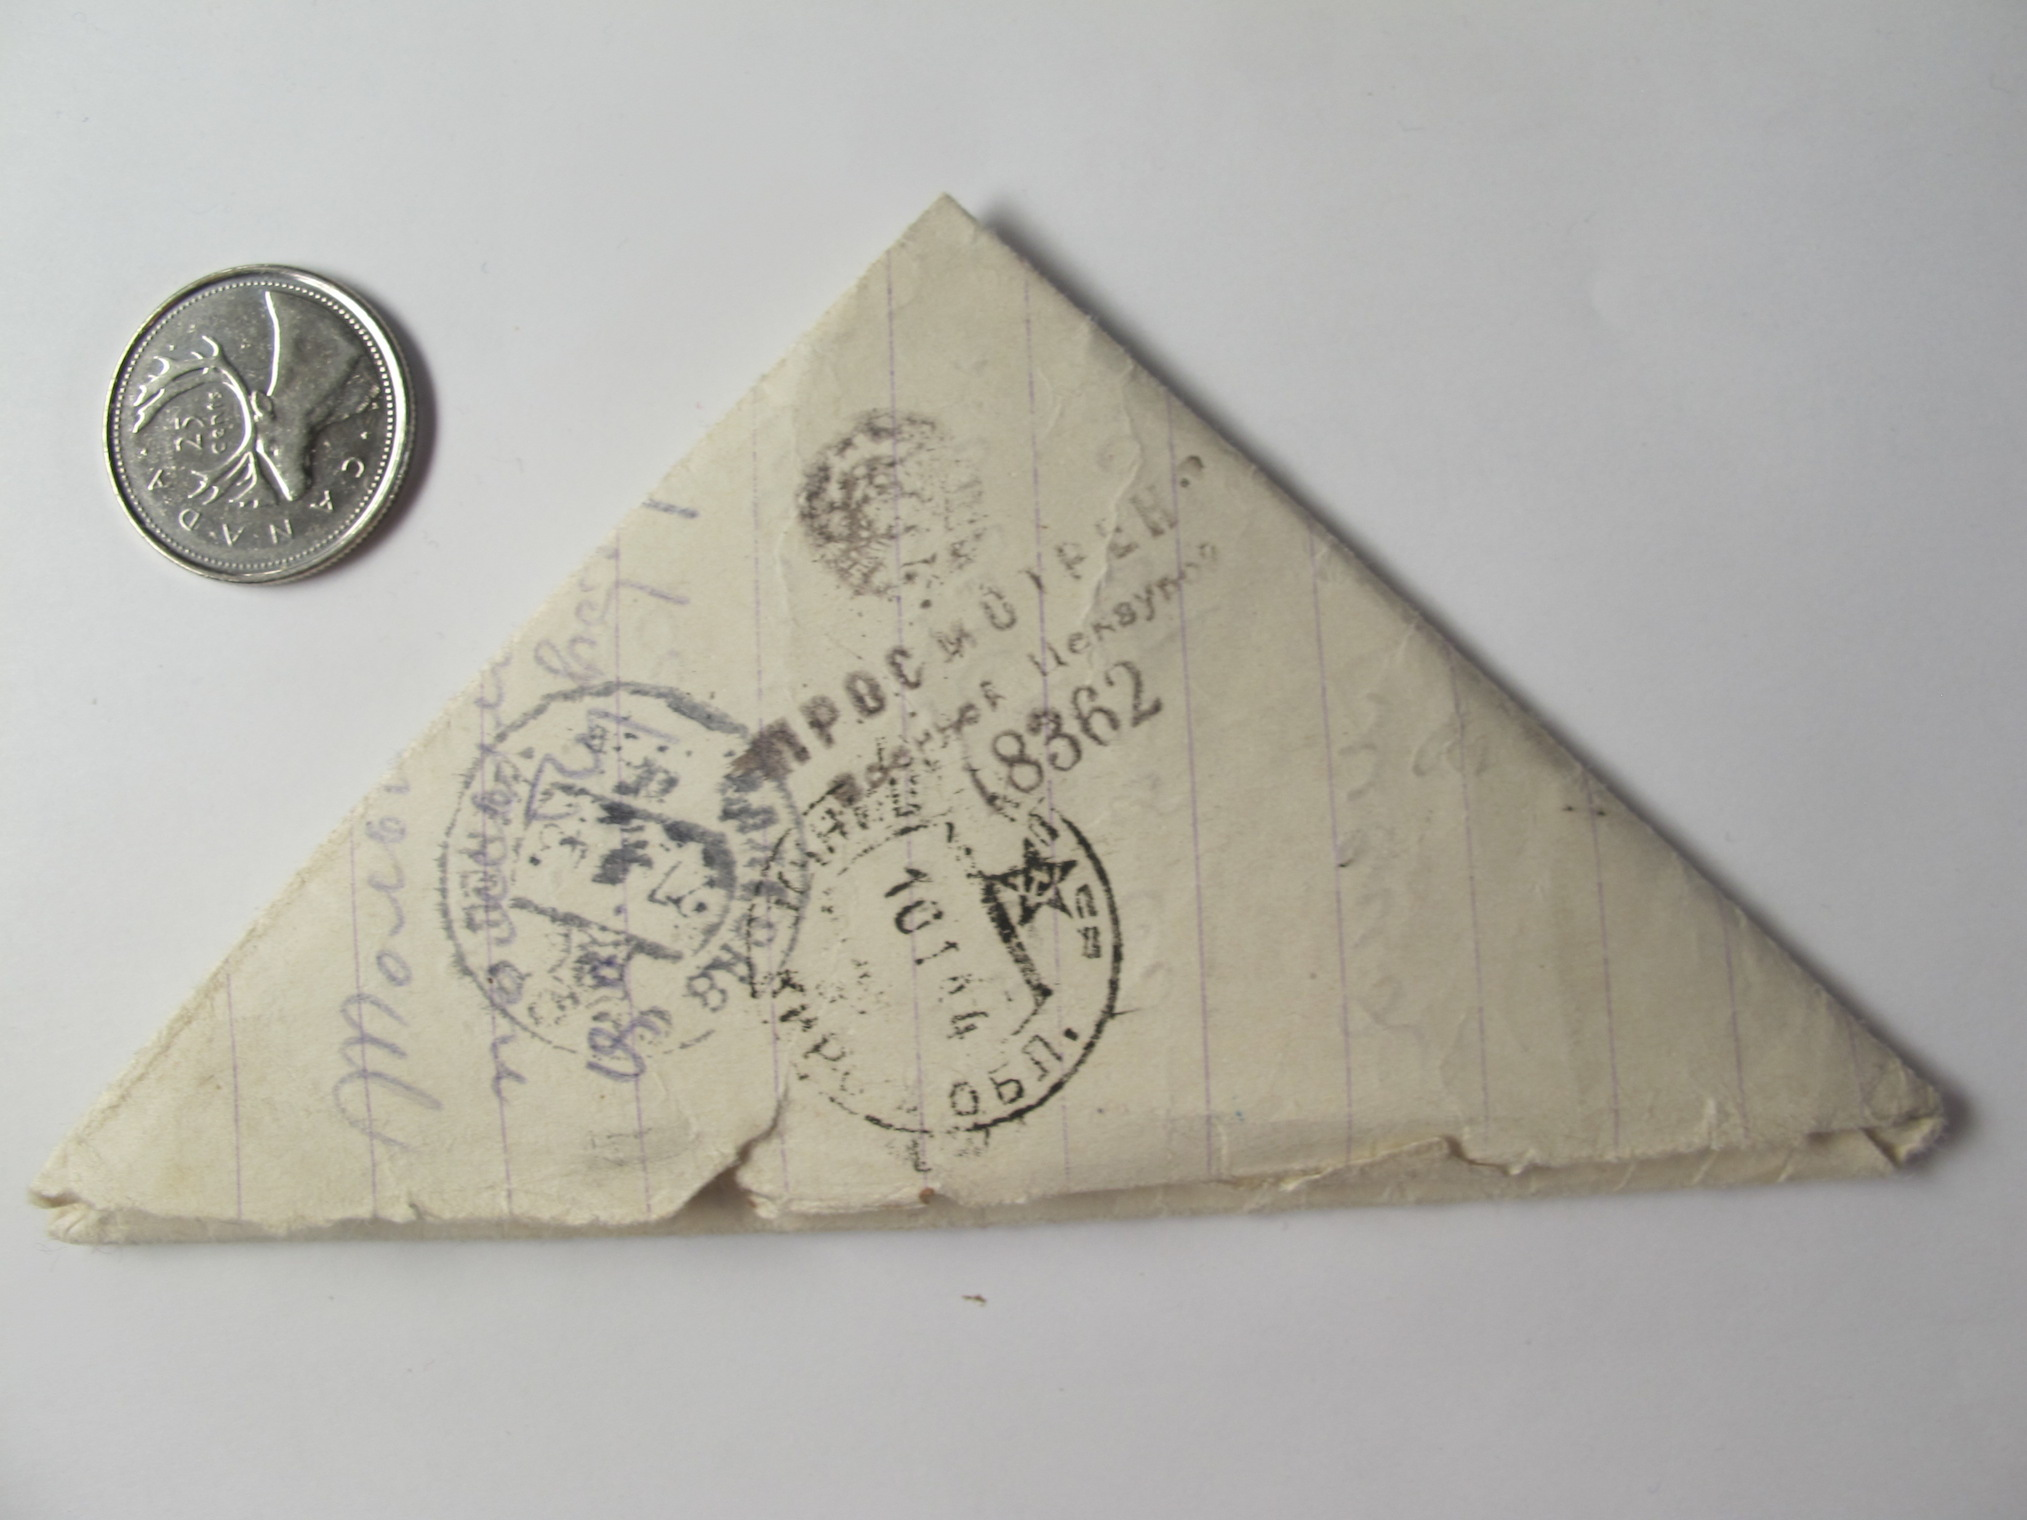 1940s. WWII Russian Soldier Triangle Letter.